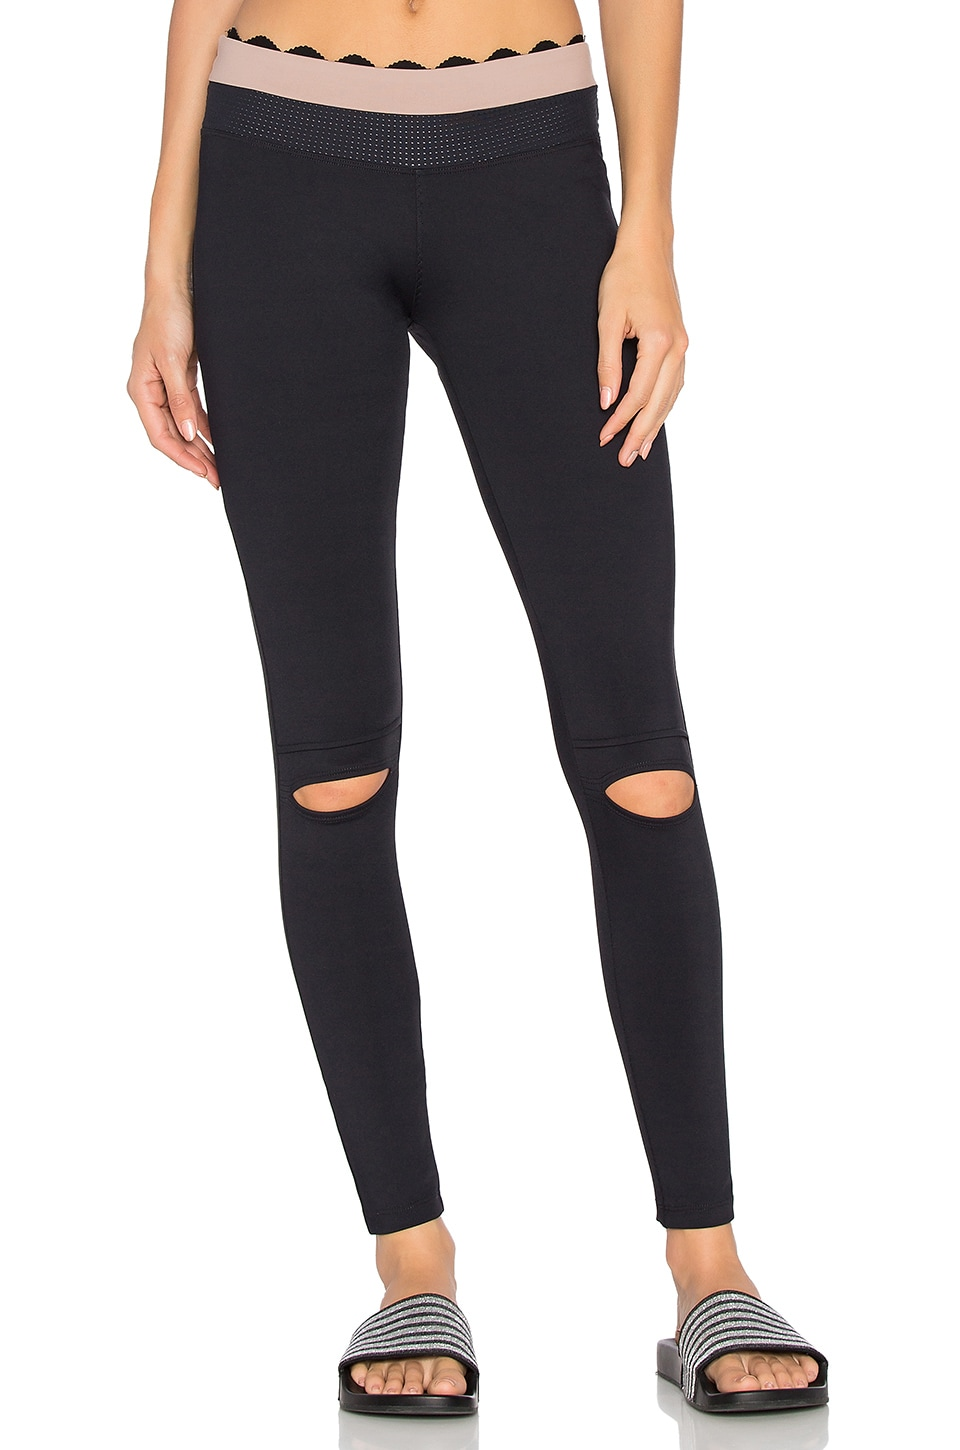 Knockout Legging by Track & Bliss